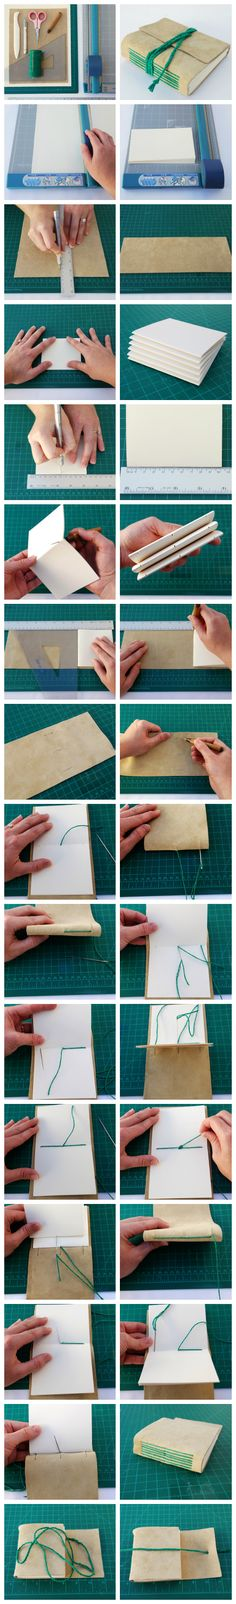 Encuadernado con puntada larga   -   Long-stitch tutorial by Erica Craft                                                                                                                                                     Más